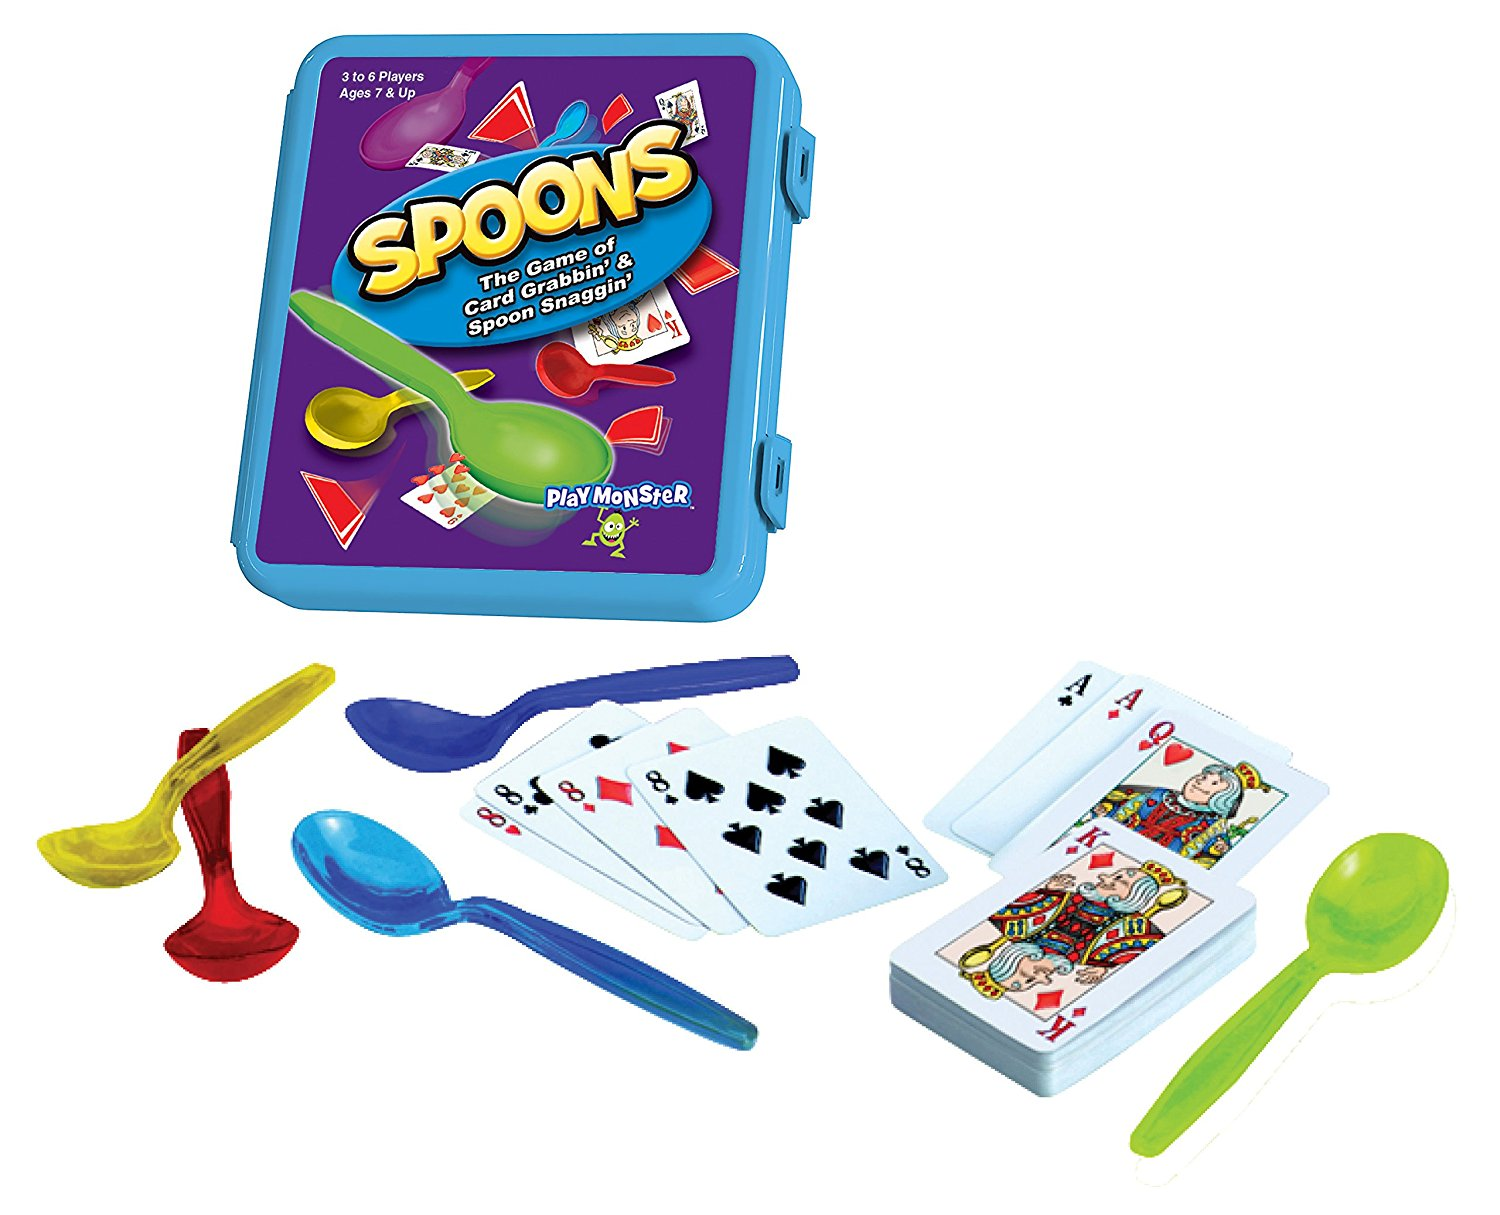 Amazon Lowest Price Spoons The Game Of Card Grabbin Spoon